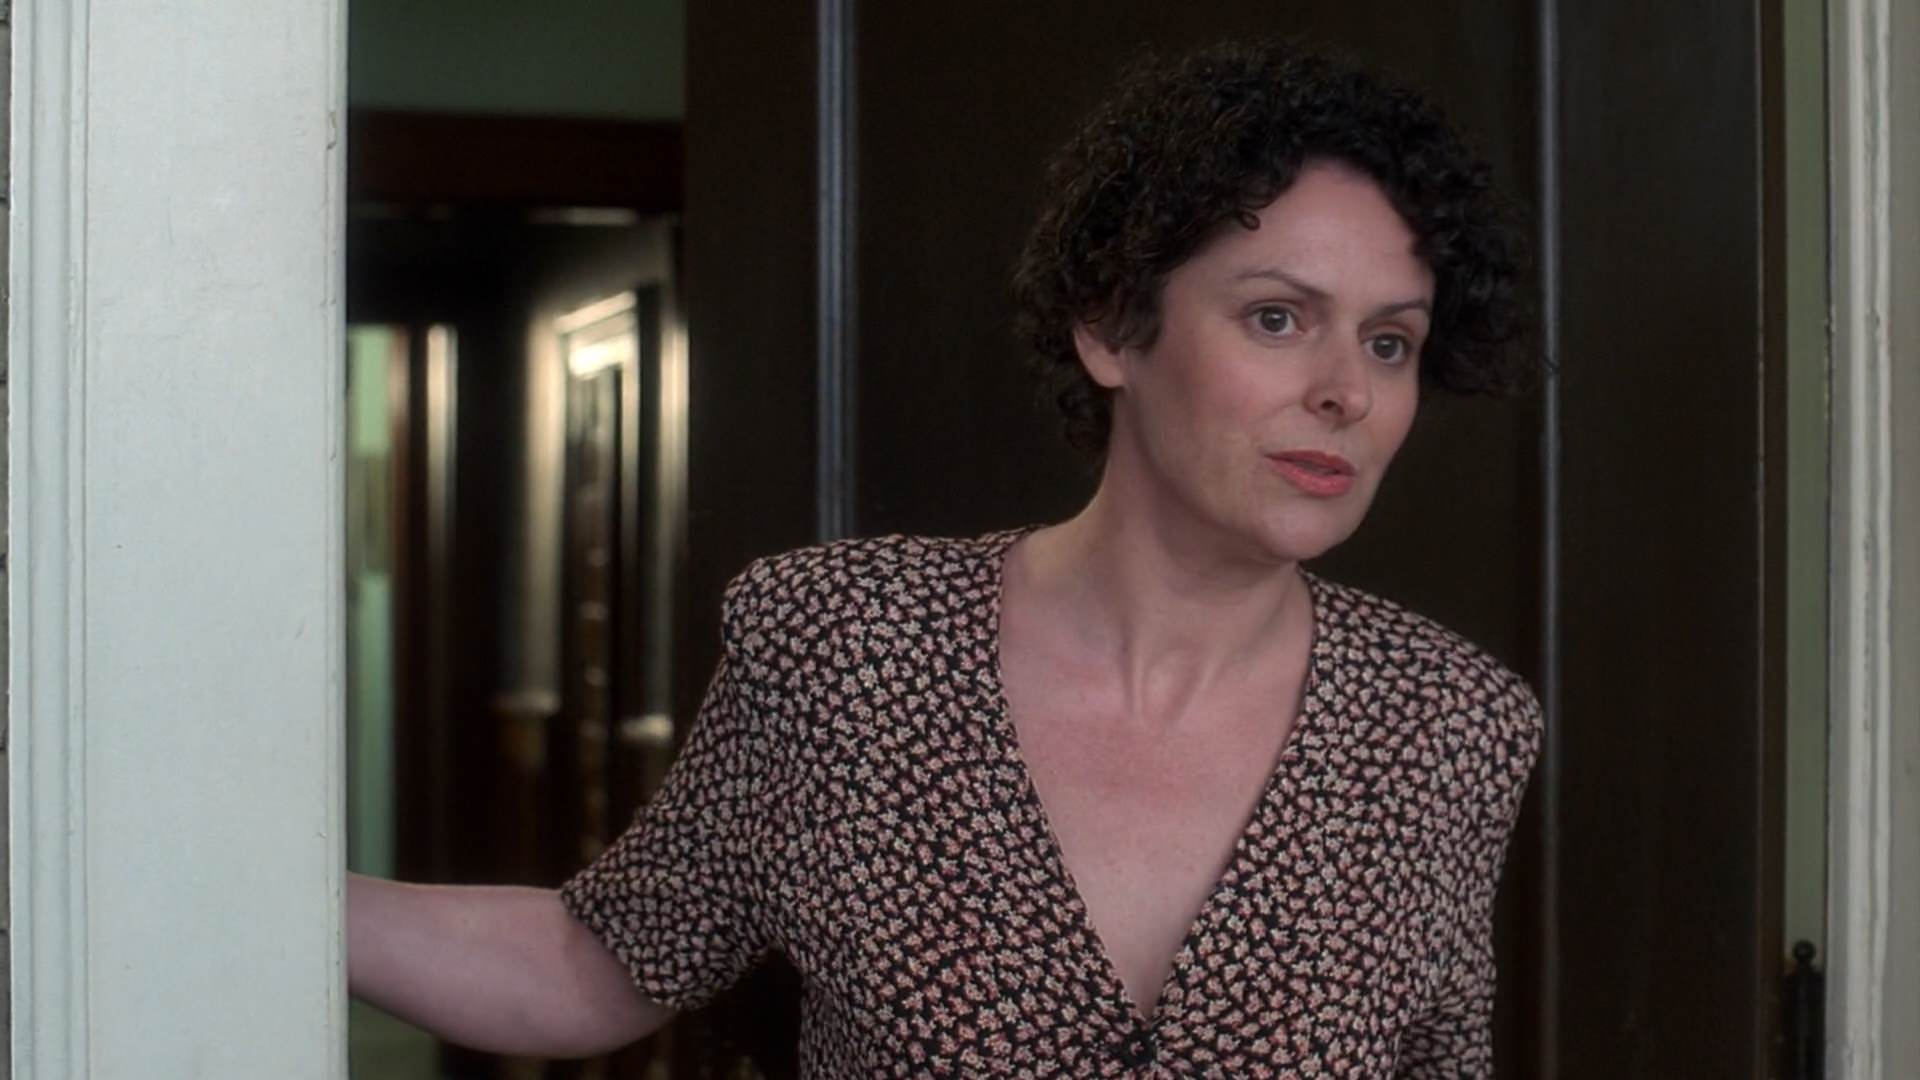 She's actually in a Season 2 episode as well, but she's always Mrs. Budahas to me.